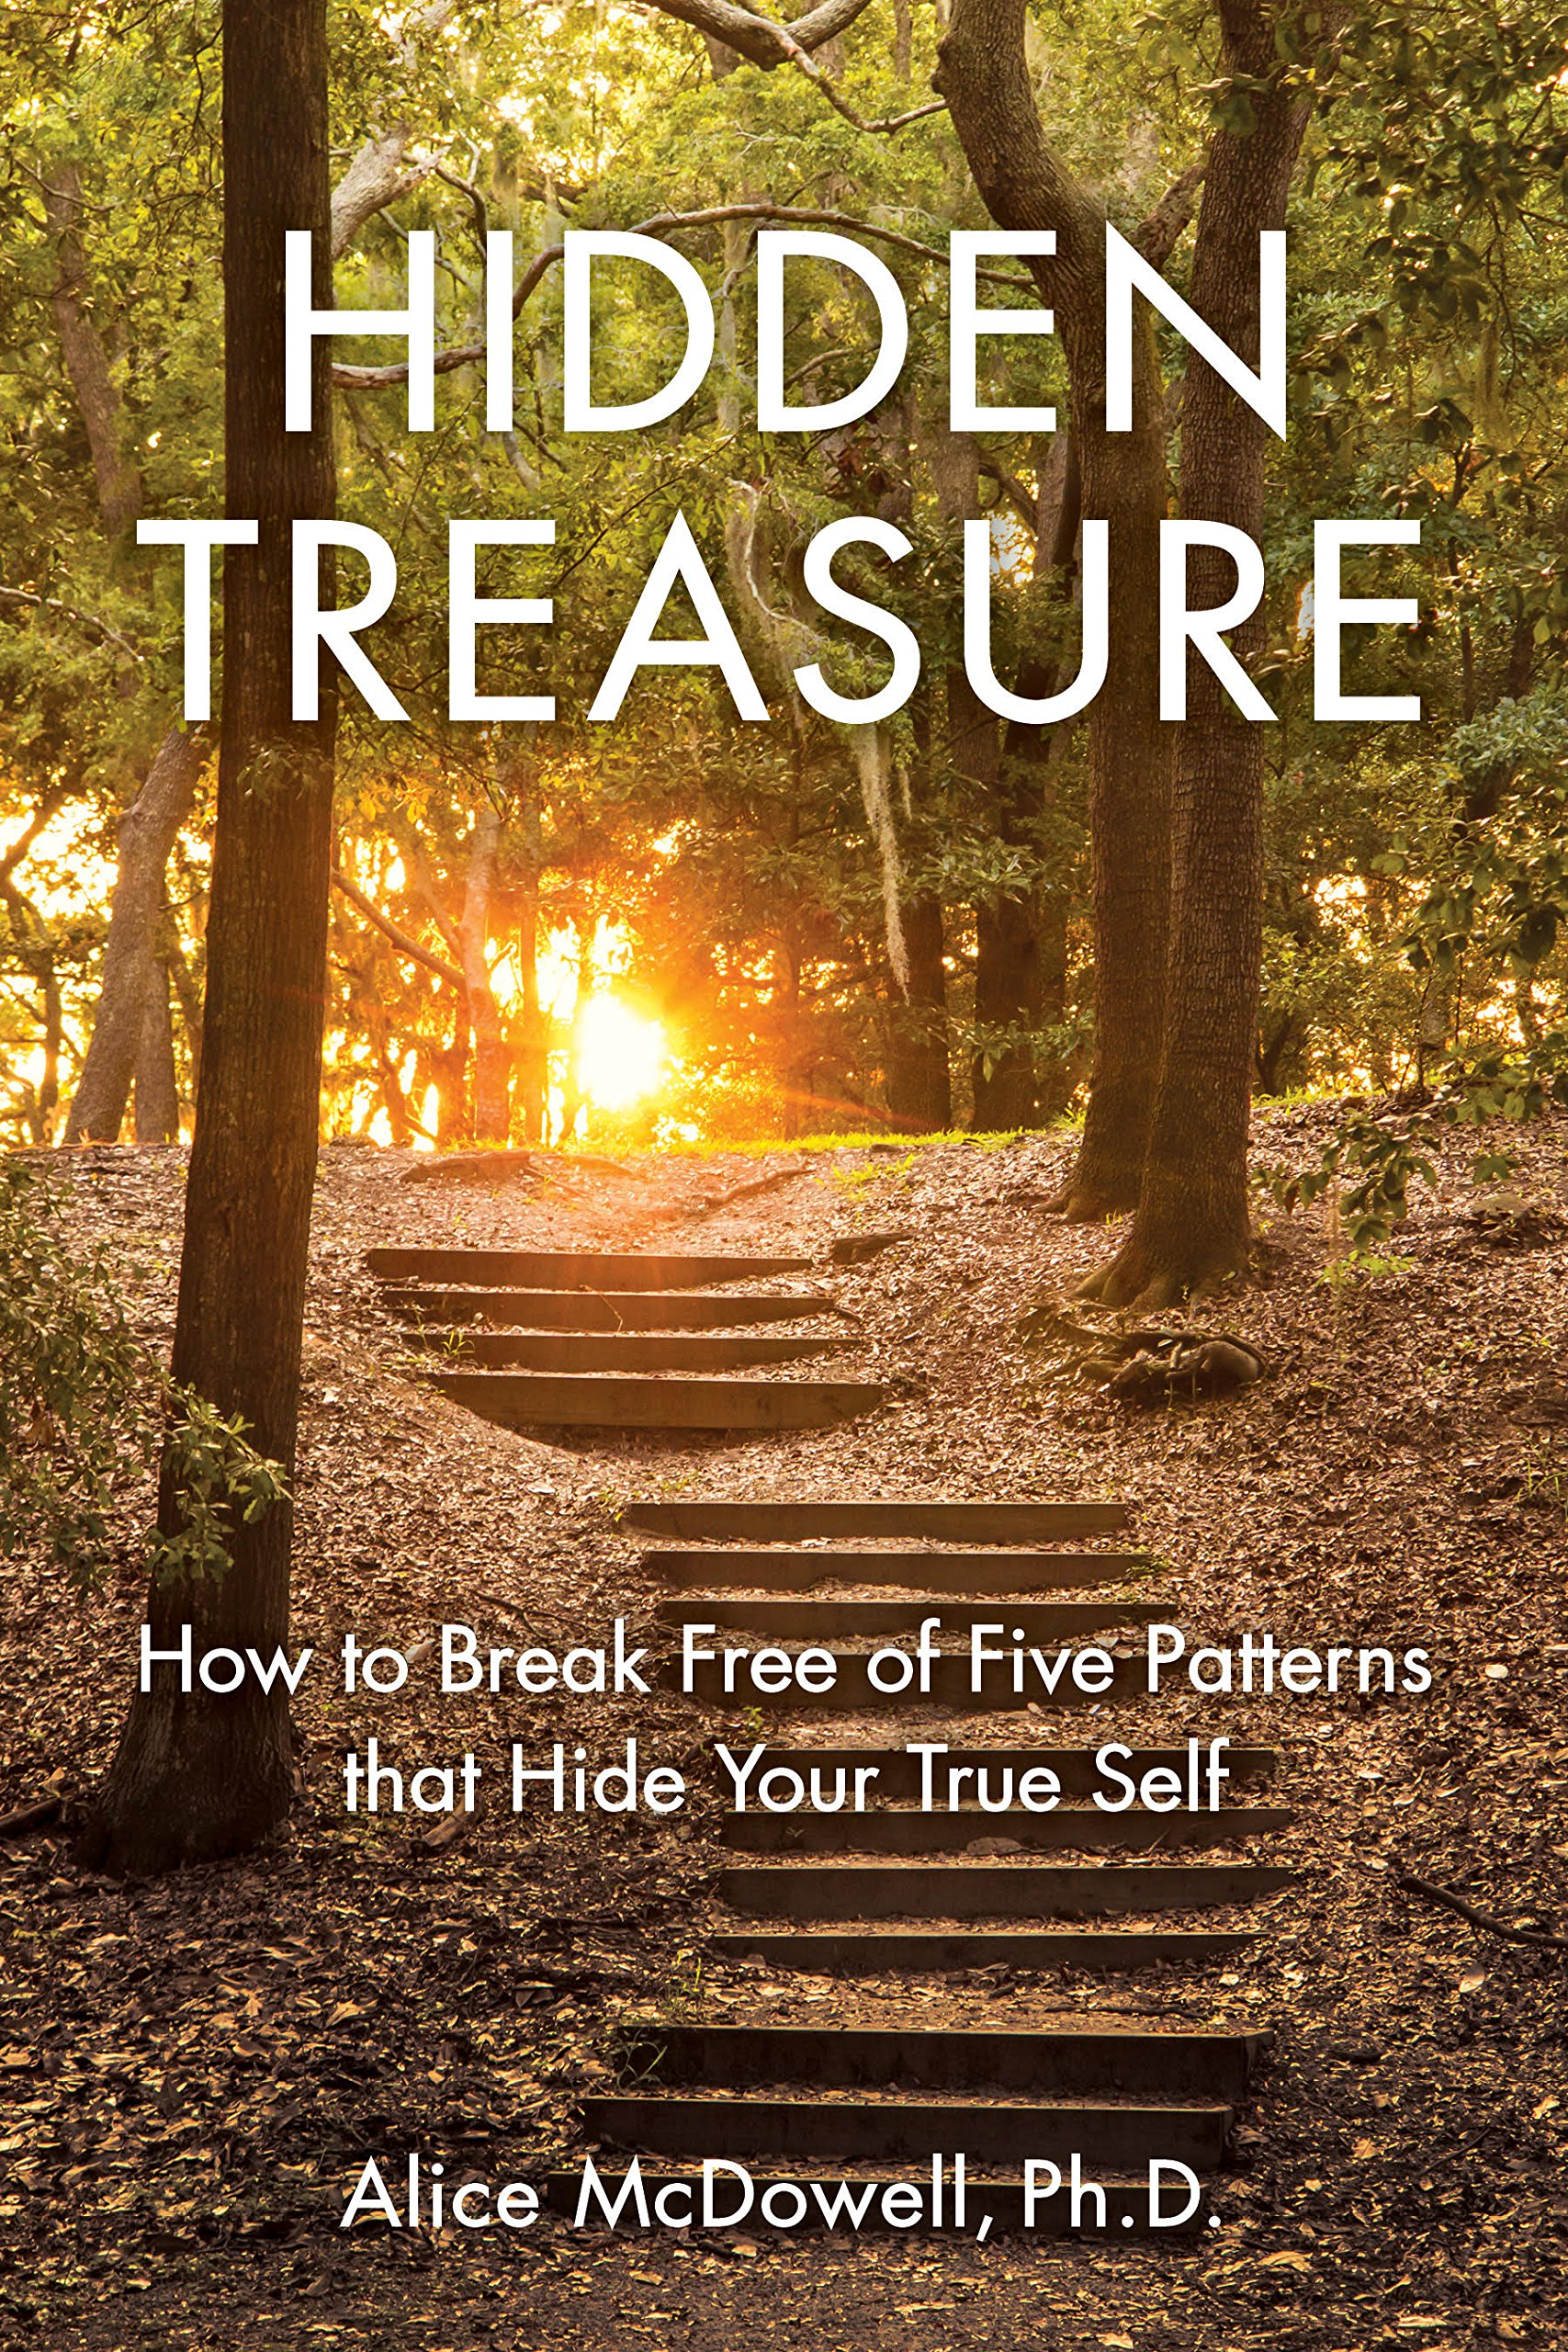 hiddeen treasure book cover